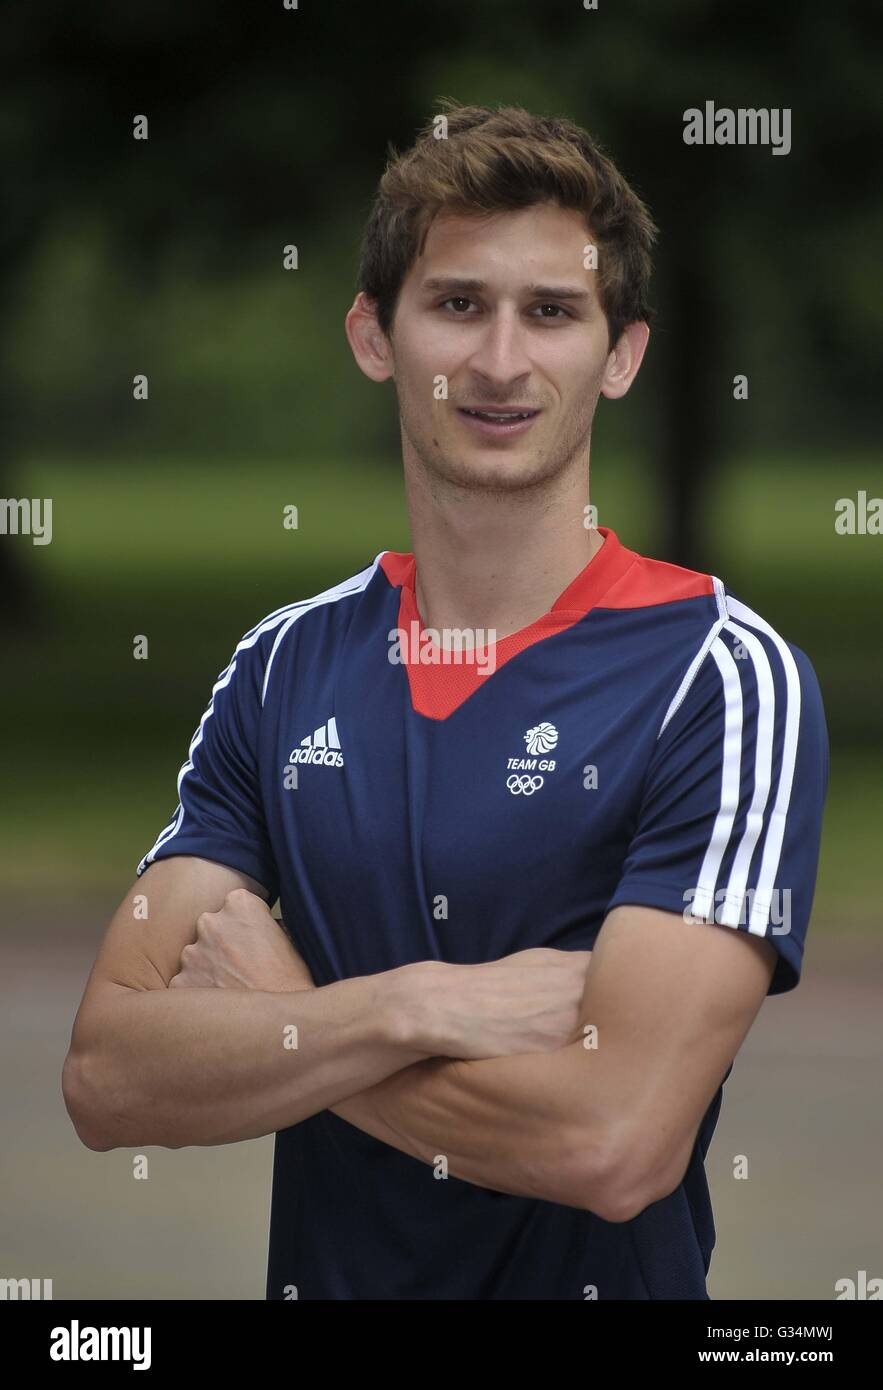 London, UK. 8th June, 2016. James Cooke. TeamGB announce the modern pentathlon team for the Rio2016 Olympics. Hyde - Stock Image